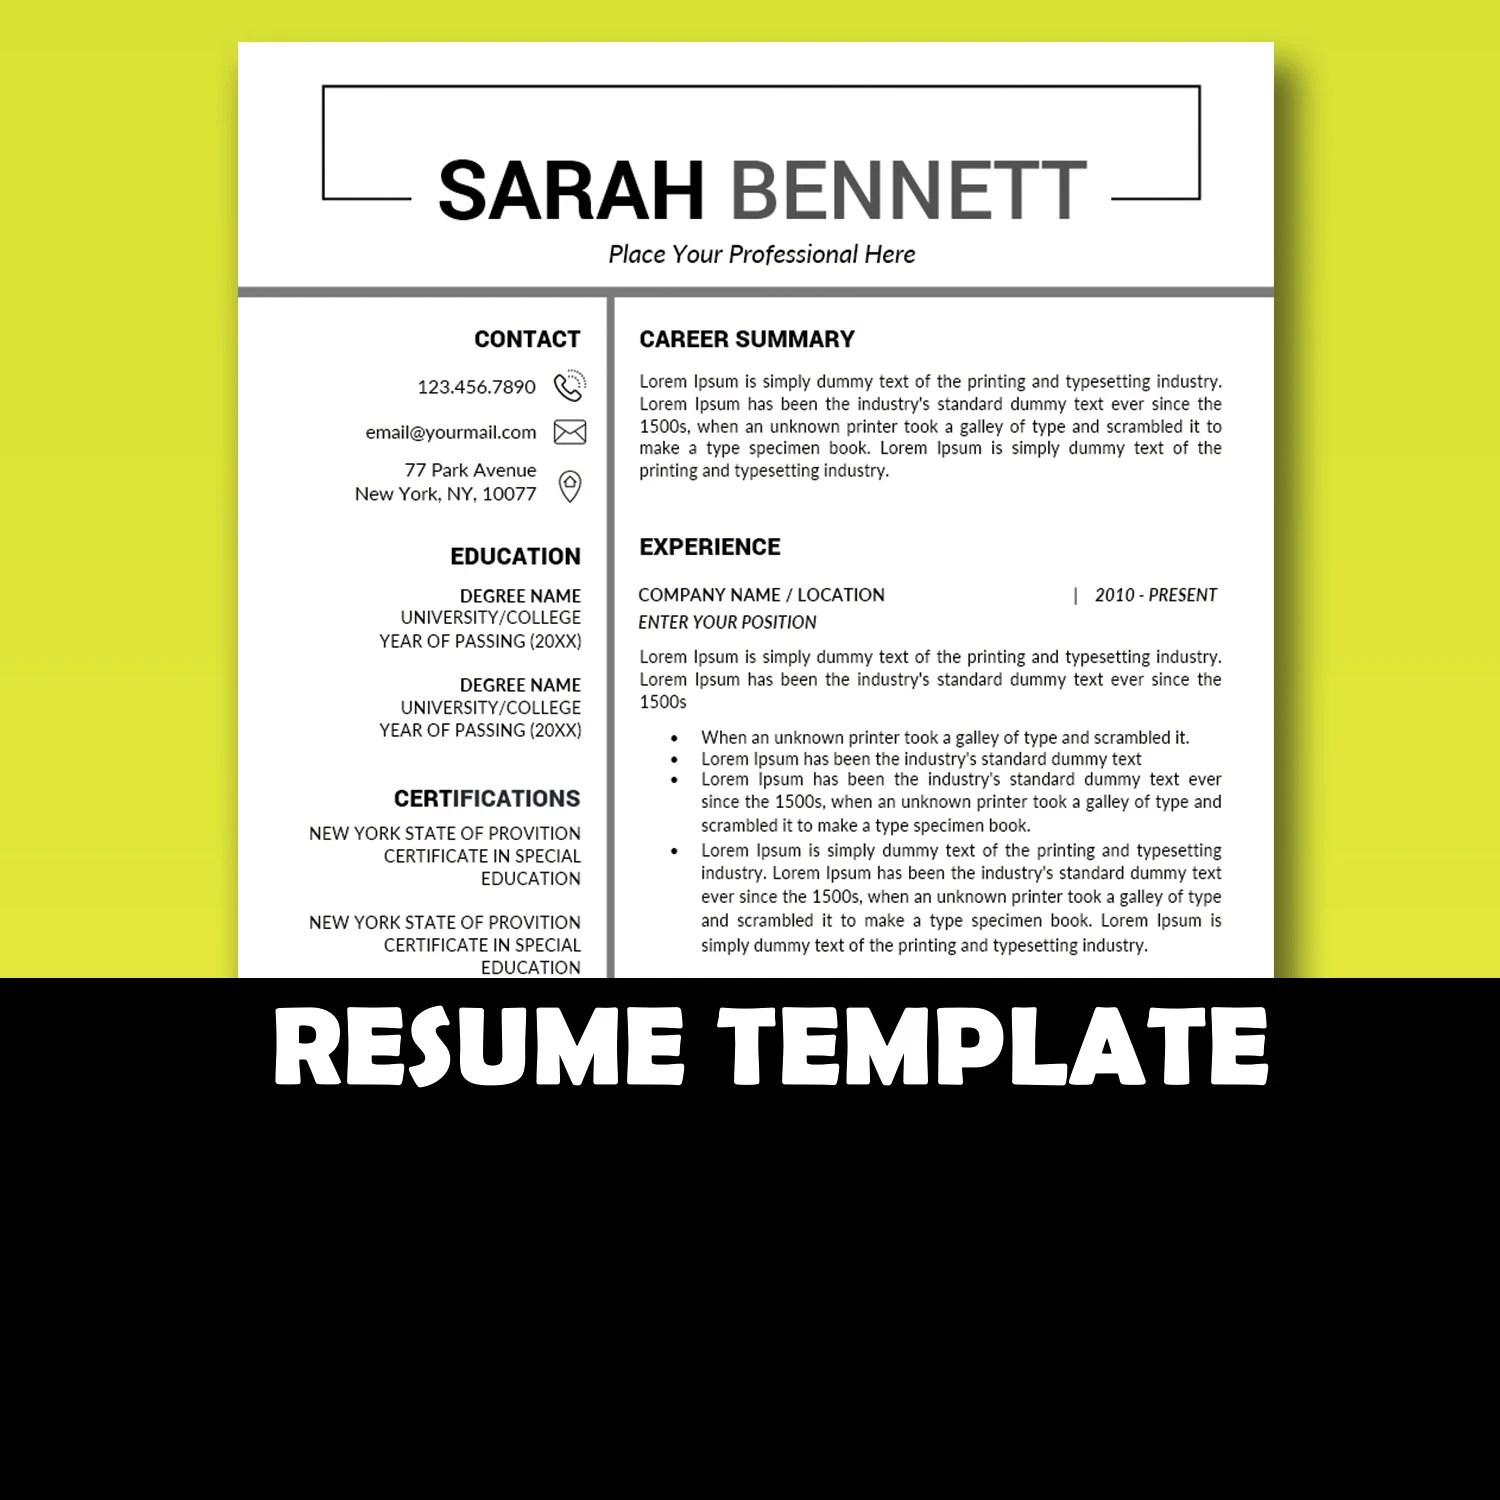 Job References Template / Marketing Resume Minimalist Resume Etsy